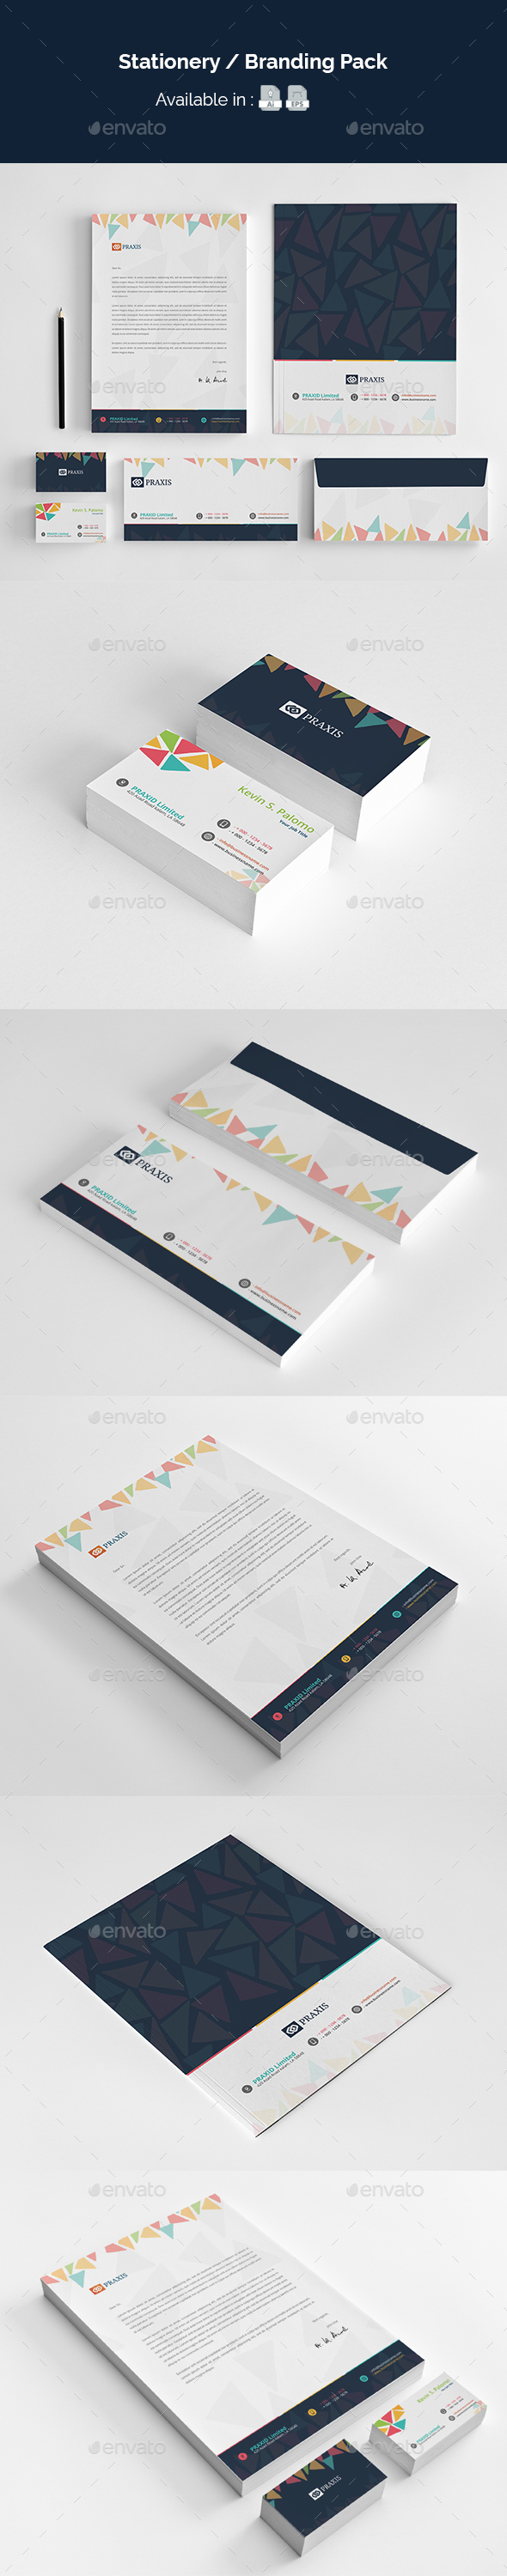 Stationery / Branding Pack - Stationery Print Templates